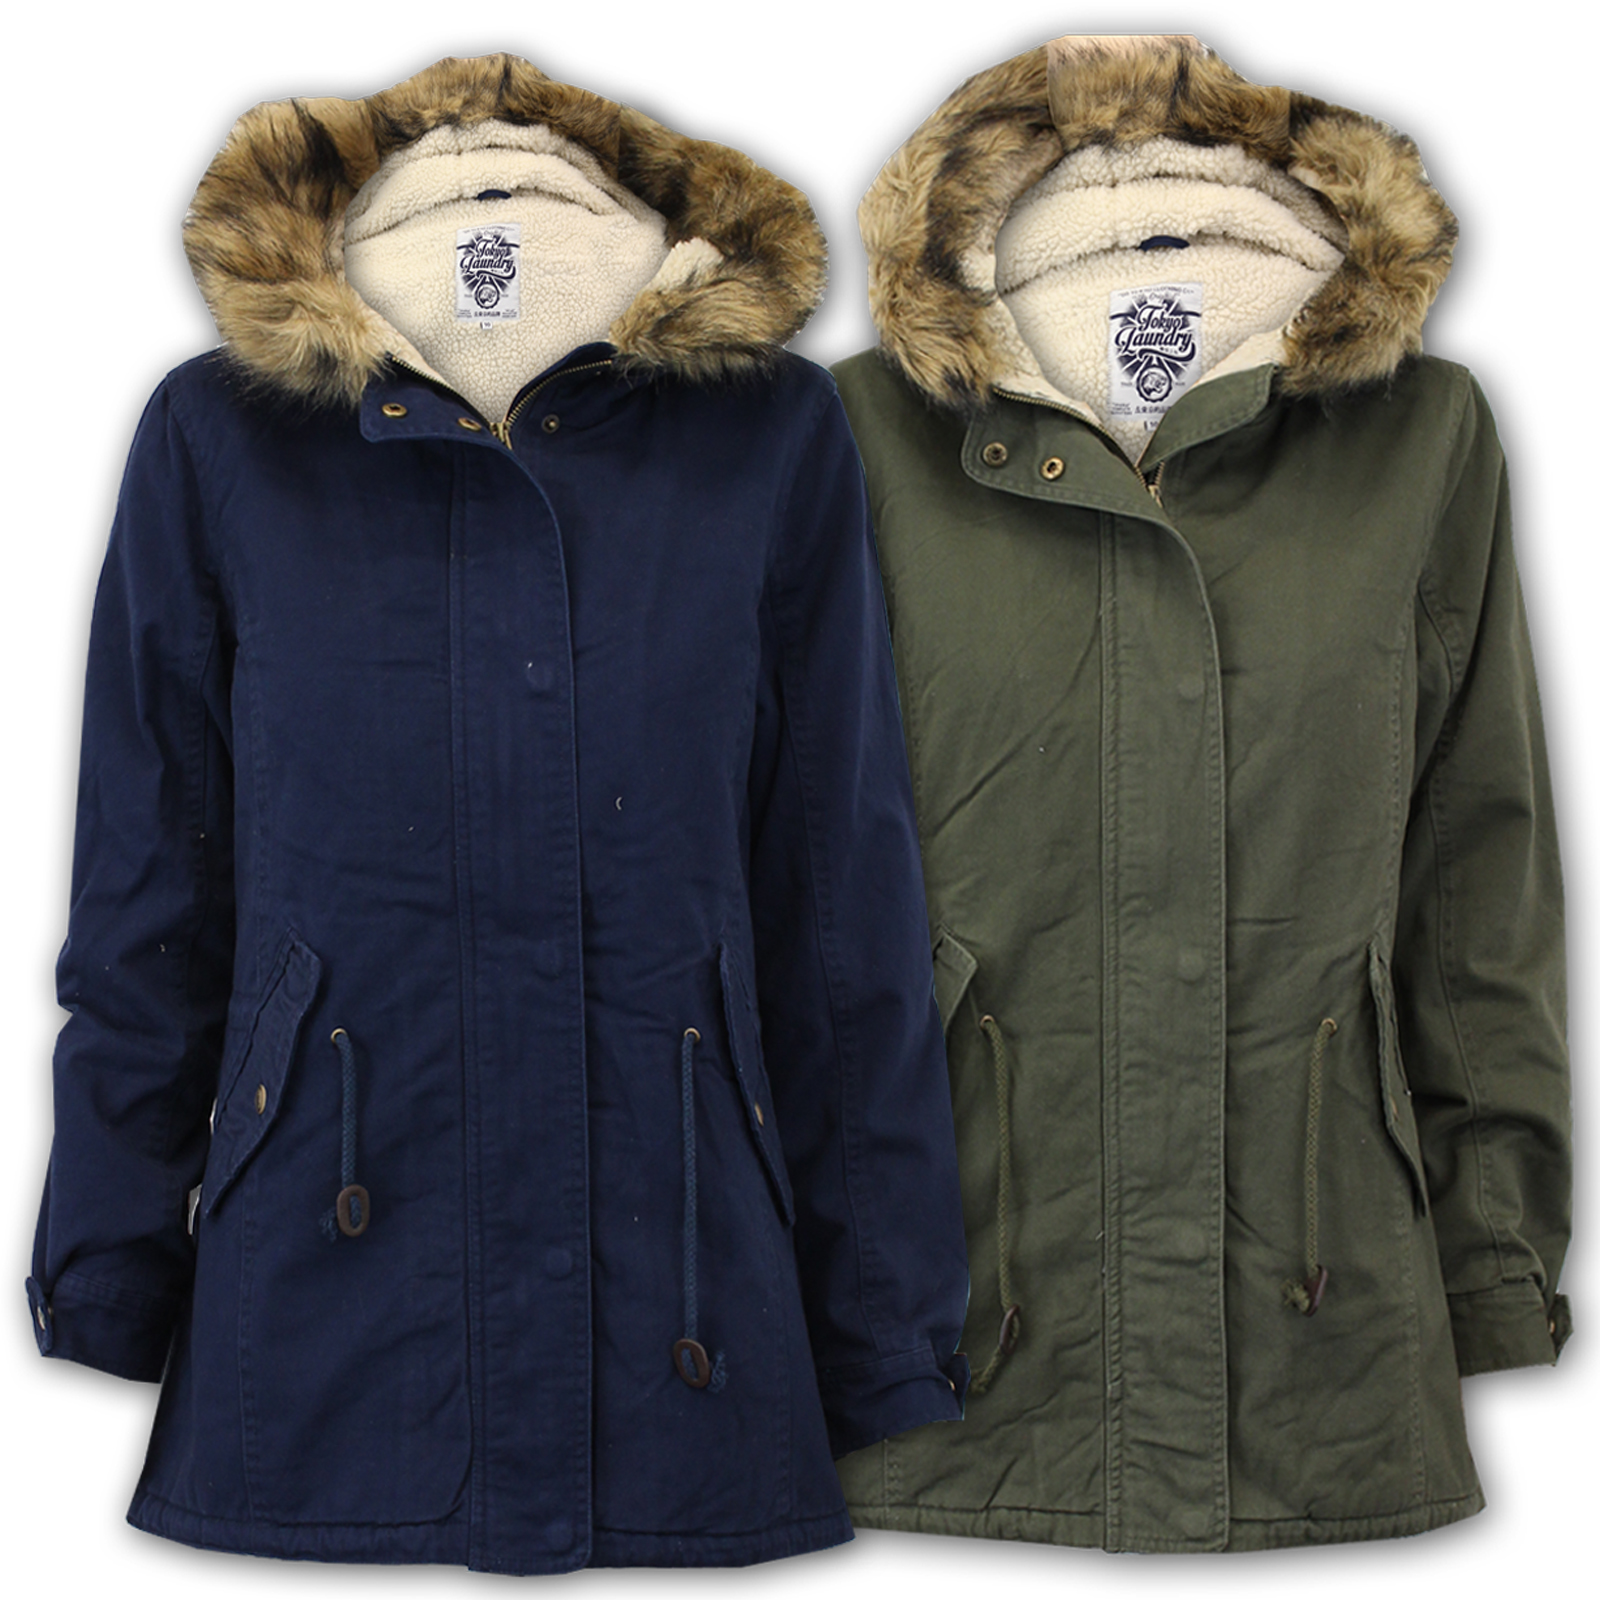 Ladies Fish Tail Parka Jackets Tokyo Laundry Coat Womens Hooded ...